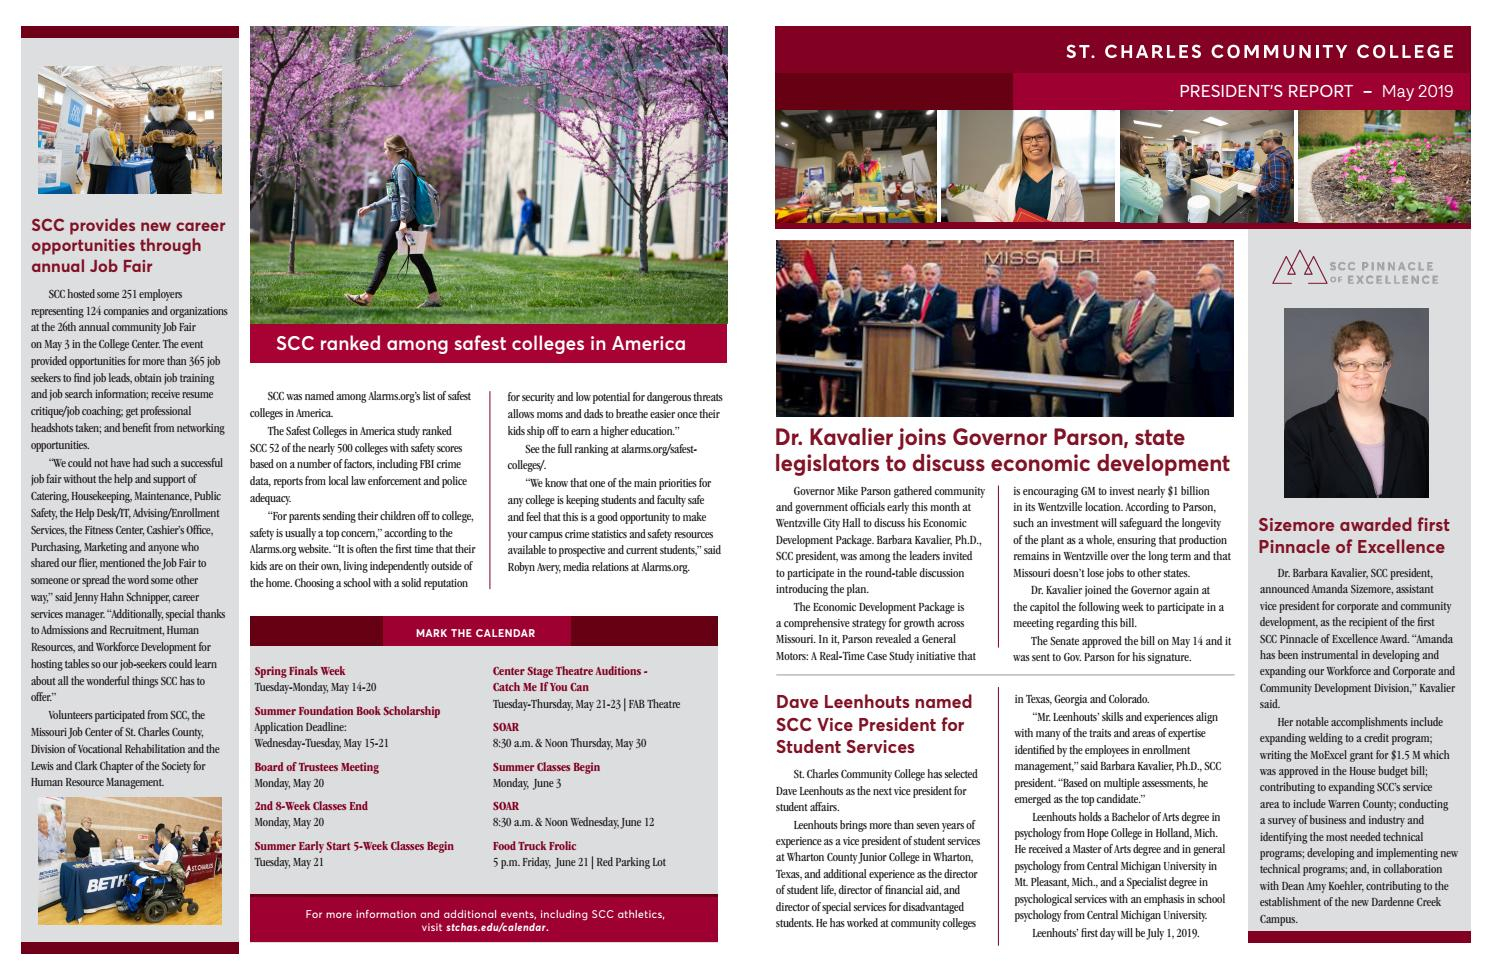 President's Report To The Board – May 2019St. Charles Pertaining To St Charles Commnity College Calendar'